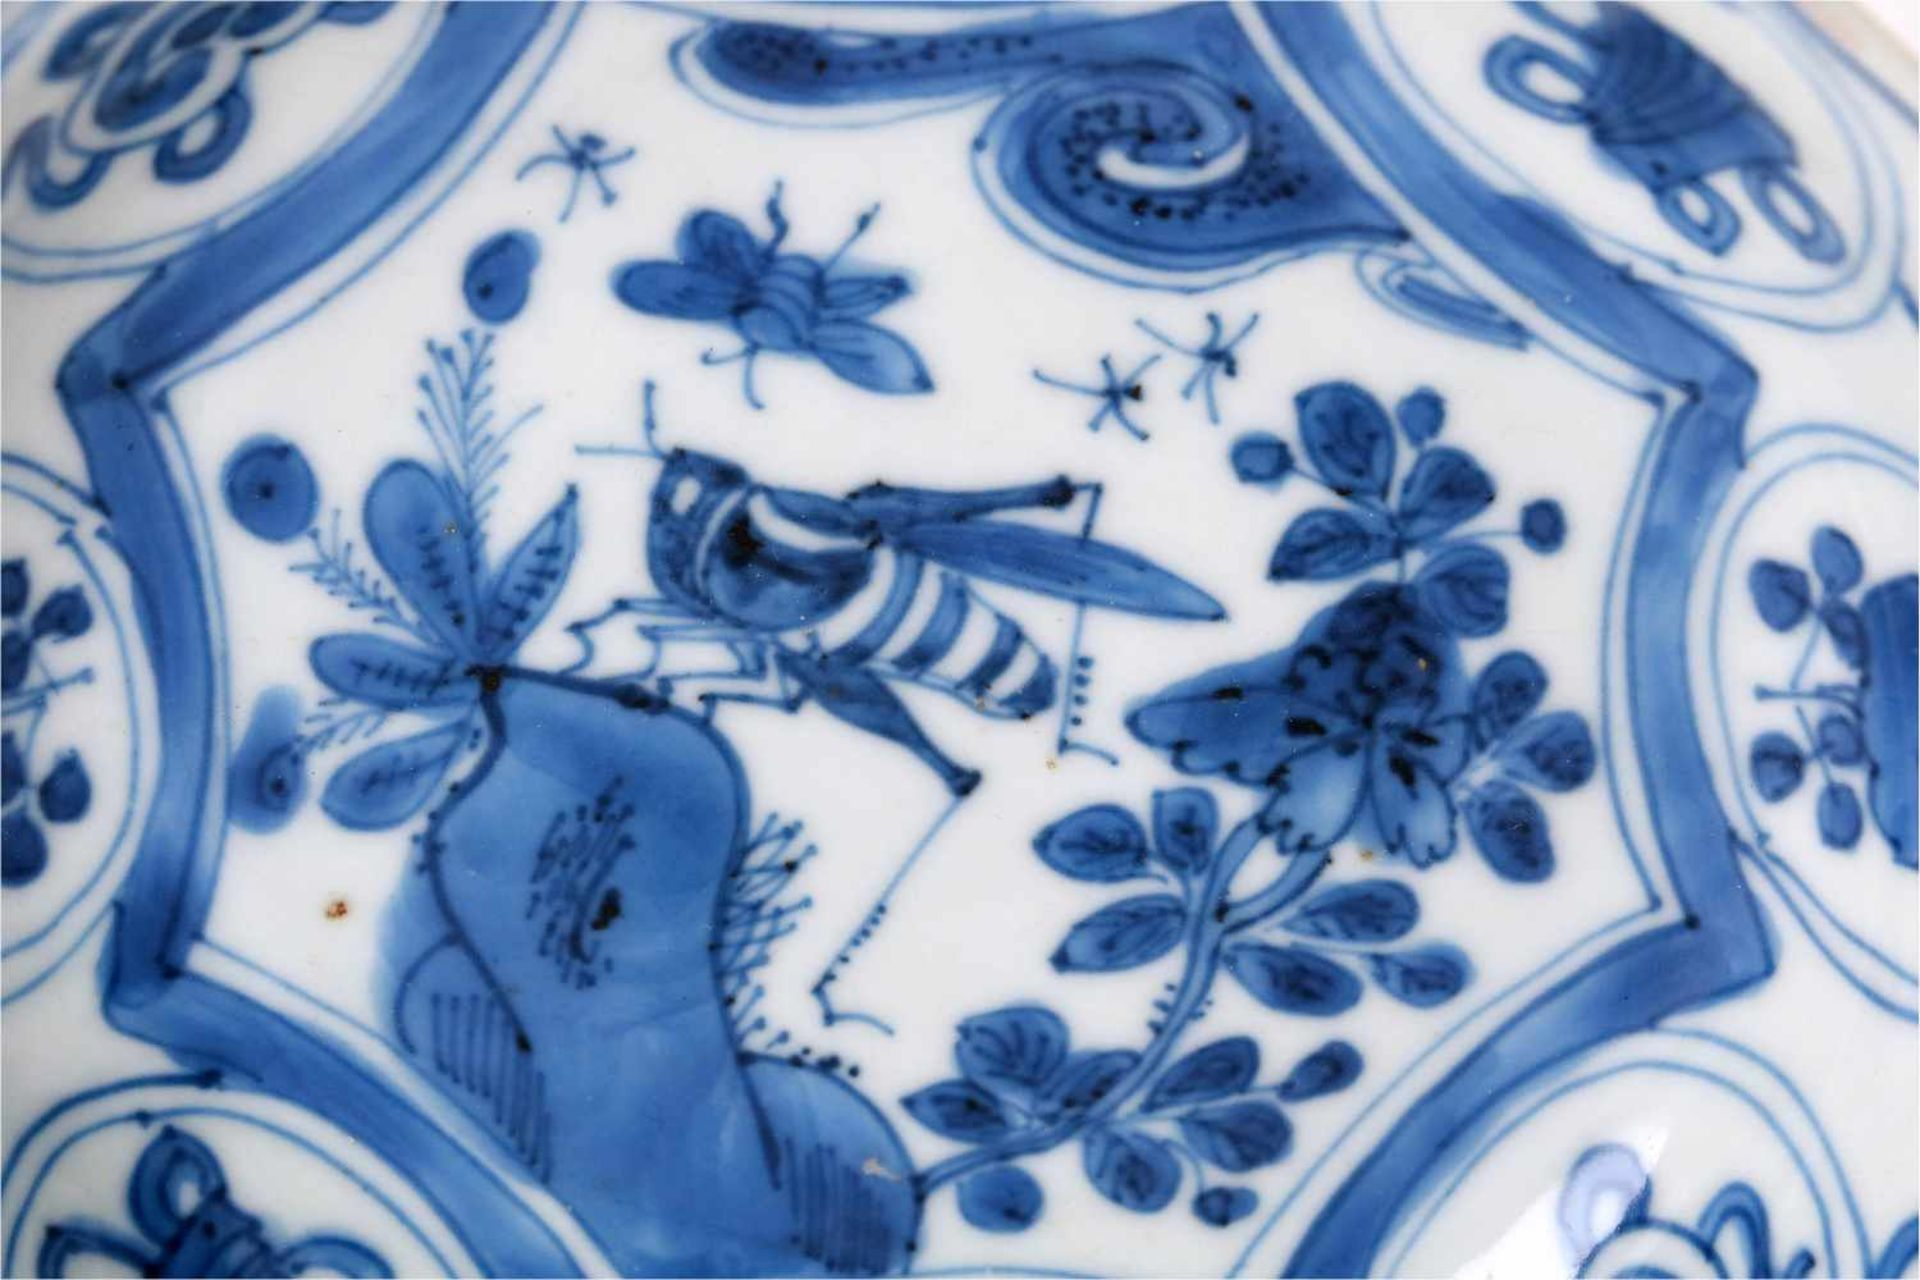 A blue and white 'kraak' porcelain dish, decorated with flowers, a butterfly and a cricket. - Bild 3 aus 3